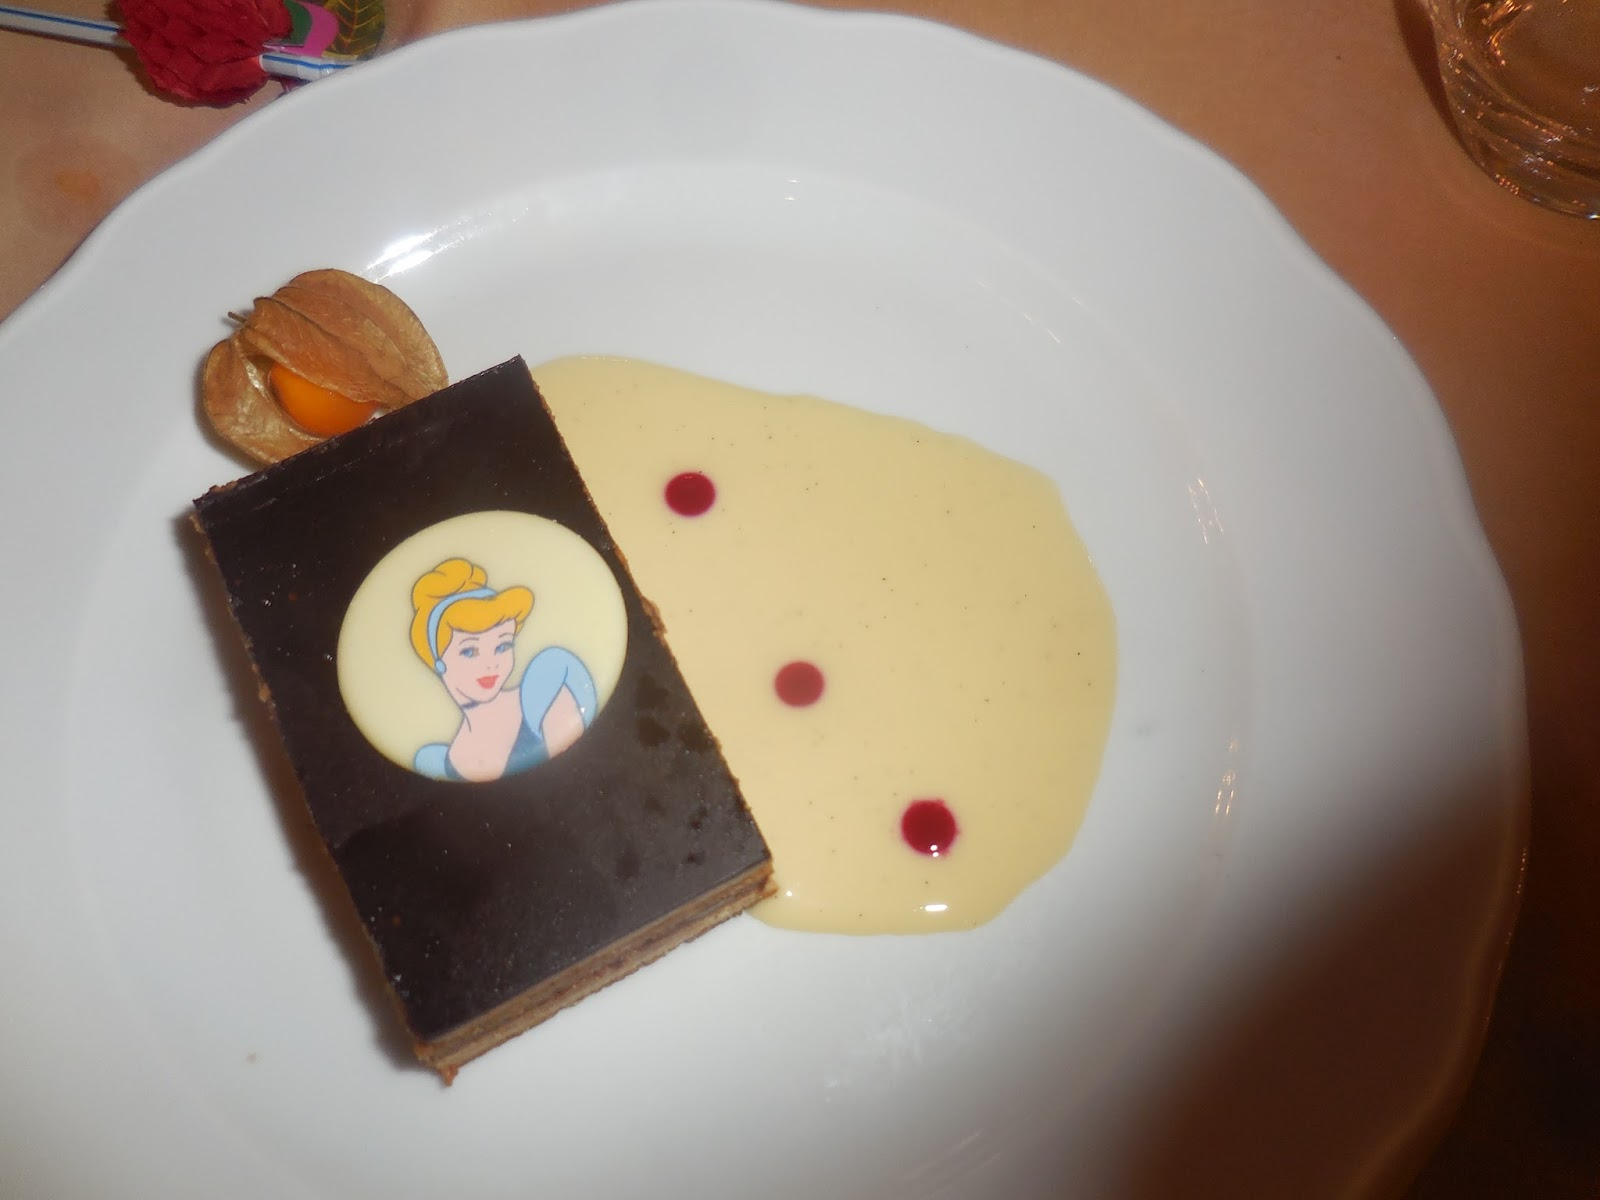 food at auberge de celerion